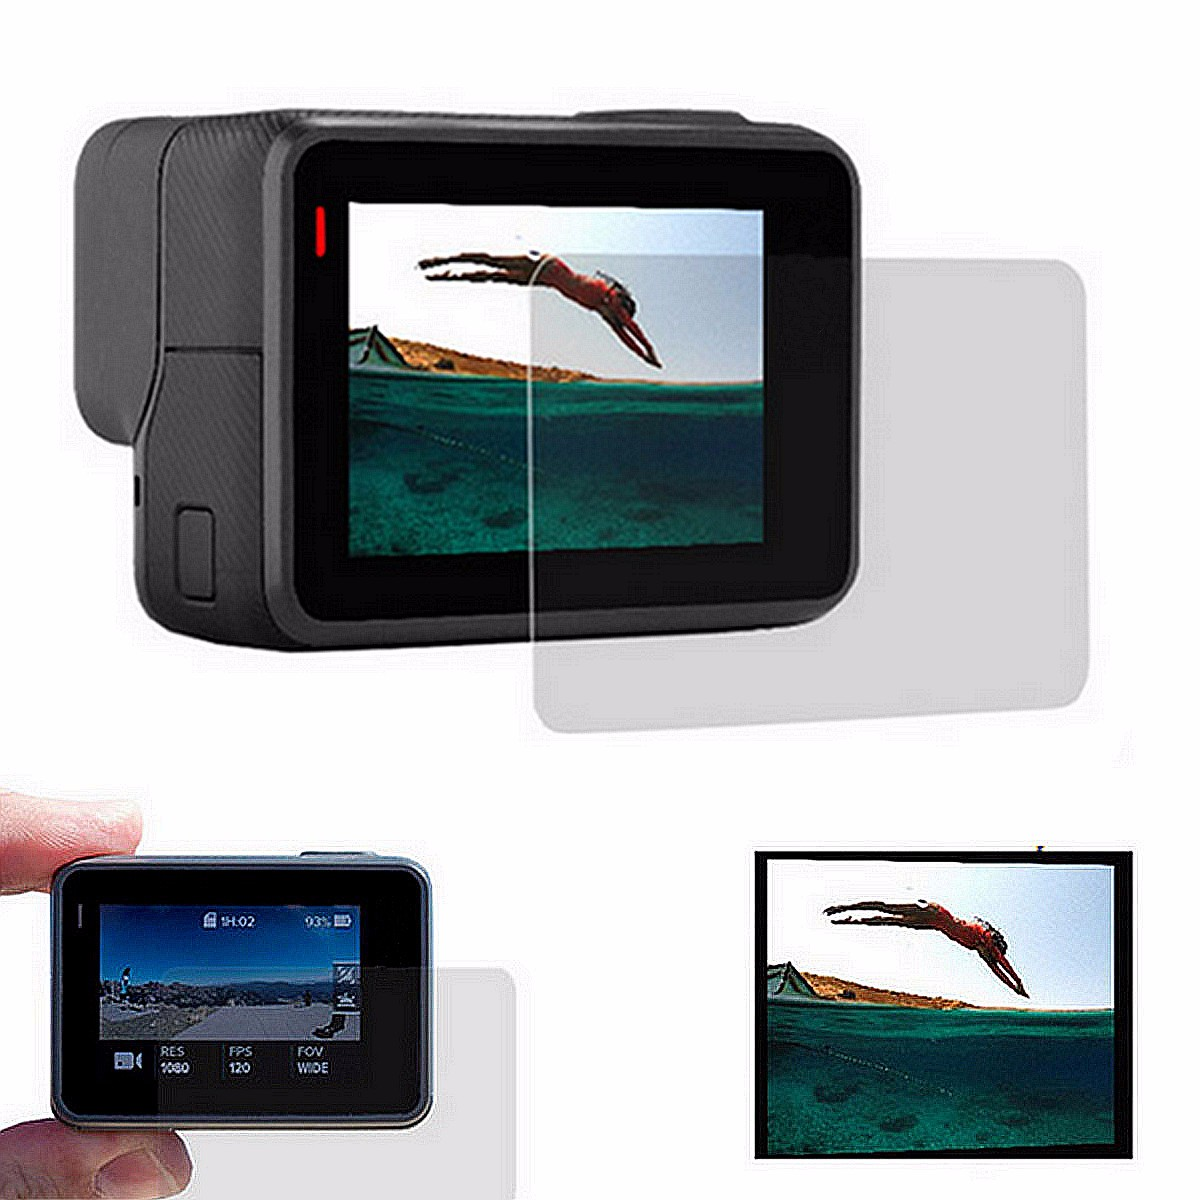 Tempered Glass LCD Screen Protective Film Protector Guard For Gopro Hero 5 Black